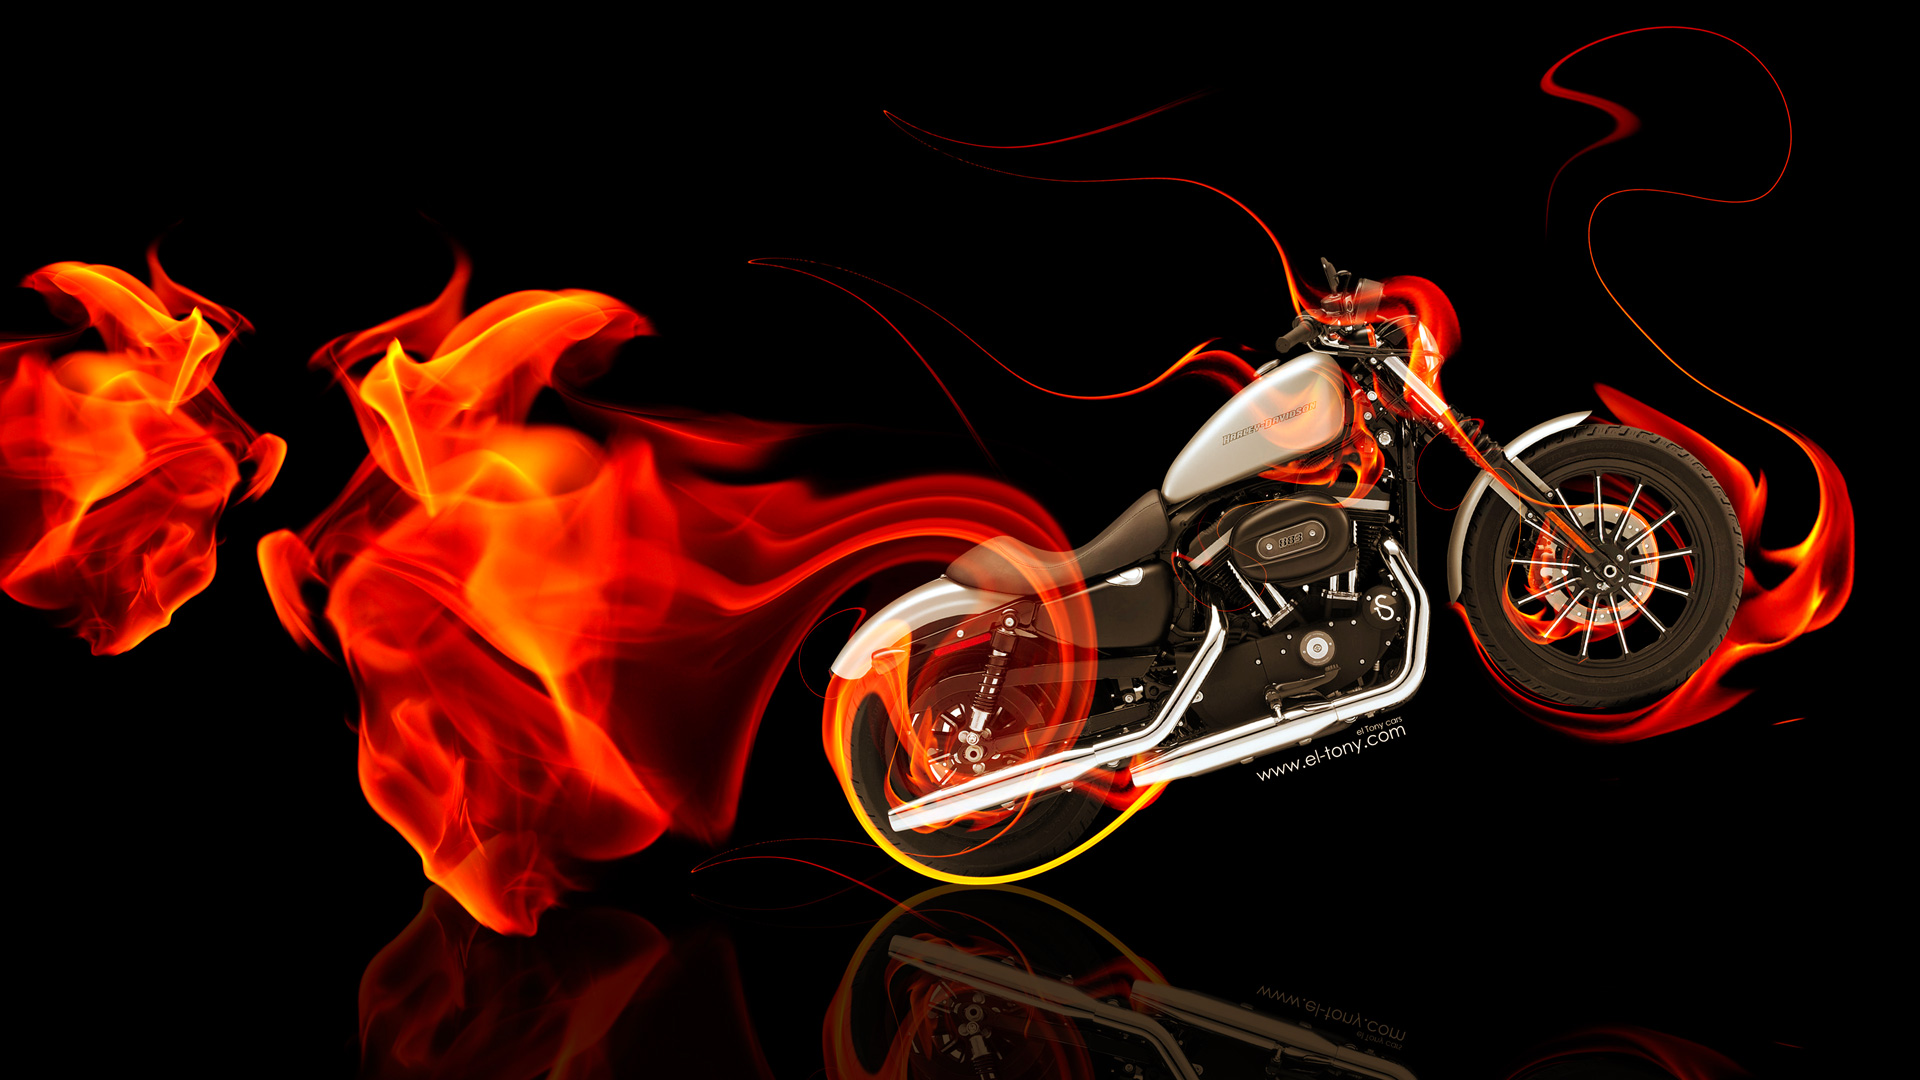 Moto Harley Davidson Side Super Fire Bike 2014 HD Wallpapers Design ...